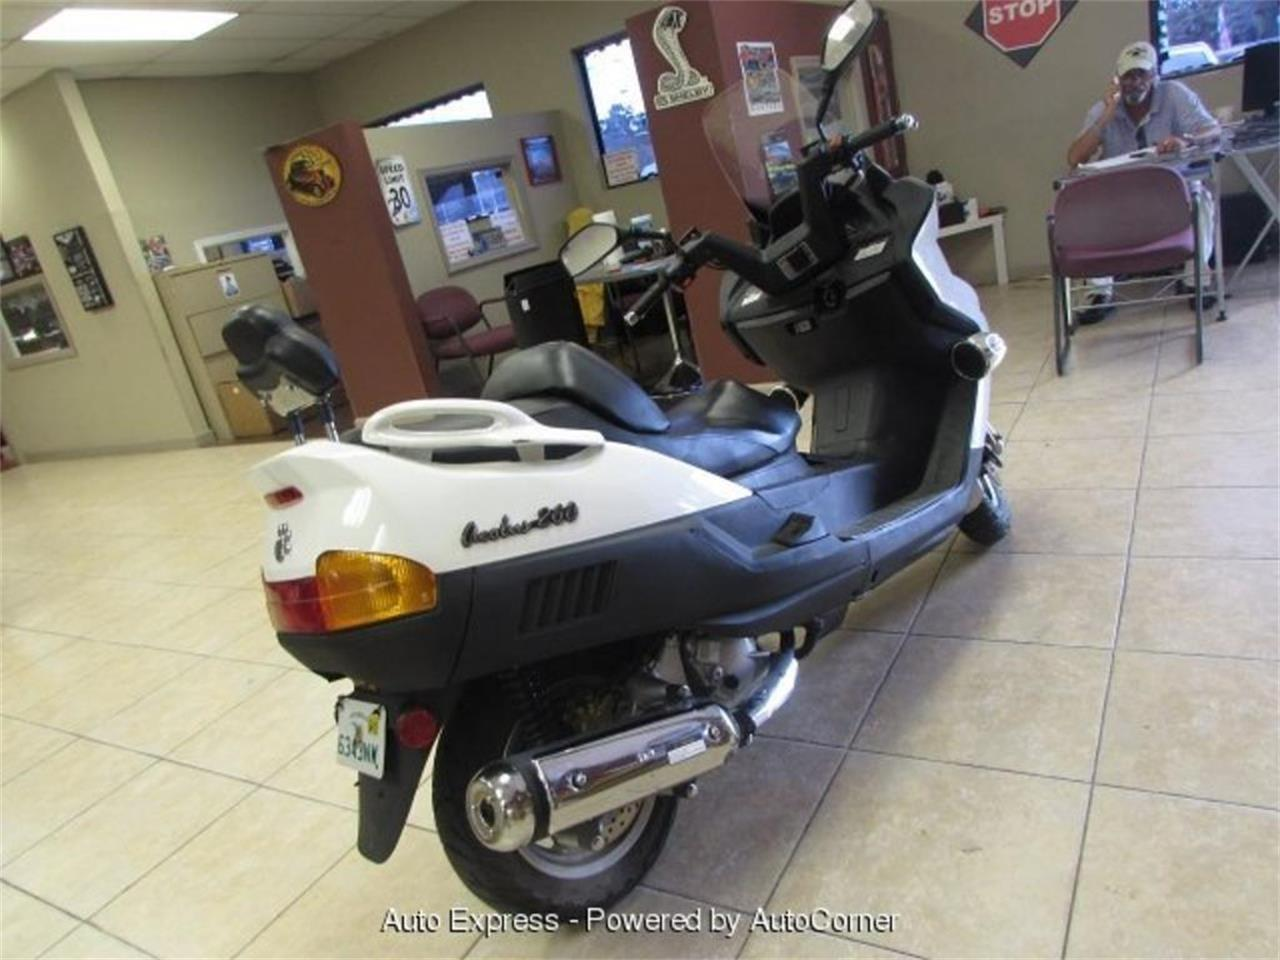 2008 Linhai Scooter for sale in Orlando, FL – photo 6